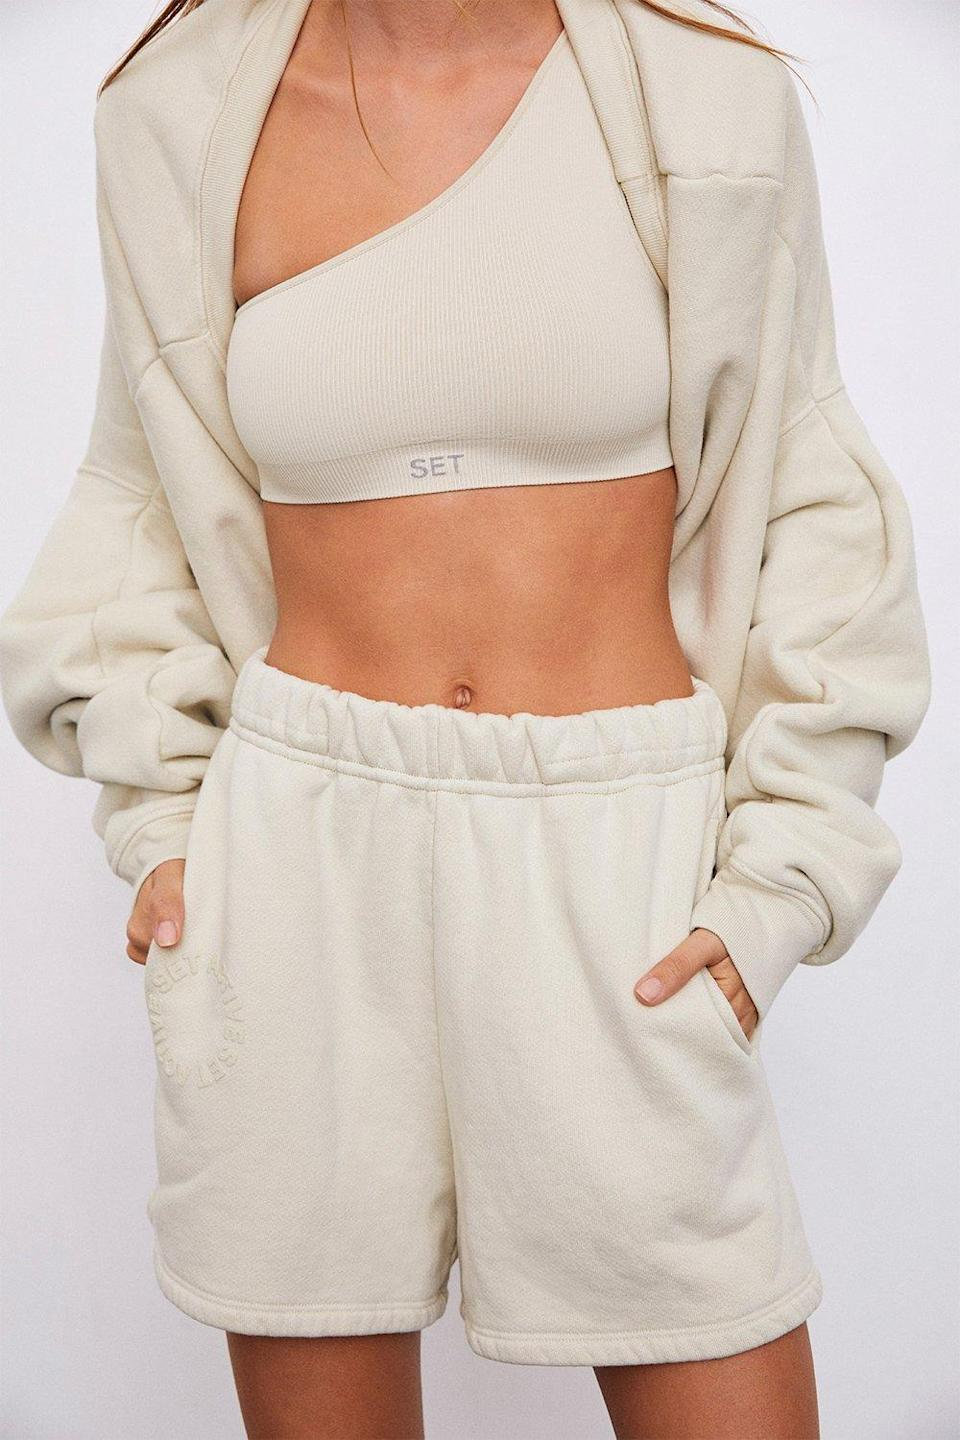 """Set Active's bestselling cream shorts are a prime pick for a post-workout brunch date. Take cues from the styling and throw slouchy <a href=""""https://www.glamour.com/gallery/best-bolero-sweaters?mbid=synd_yahoo_rss"""" rel=""""nofollow noopener"""" target=""""_blank"""" data-ylk=""""slk:sweater sleeves"""" class=""""link rapid-noclick-resp"""">sweater sleeves</a> over your <a href=""""https://www.glamour.com/gallery/best-sports-bras?mbid=synd_yahoo_rss"""" rel=""""nofollow noopener"""" target=""""_blank"""" data-ylk=""""slk:sports bra"""" class=""""link rapid-noclick-resp"""">sports bra</a> for an effortlessly cool 'fit. $65, Set Active. <a href=""""https://setactive.co/collections/set-sweatshorts/products/sweatshorts-oat-milk"""" rel=""""nofollow noopener"""" target=""""_blank"""" data-ylk=""""slk:Get it now!"""" class=""""link rapid-noclick-resp"""">Get it now!</a>"""